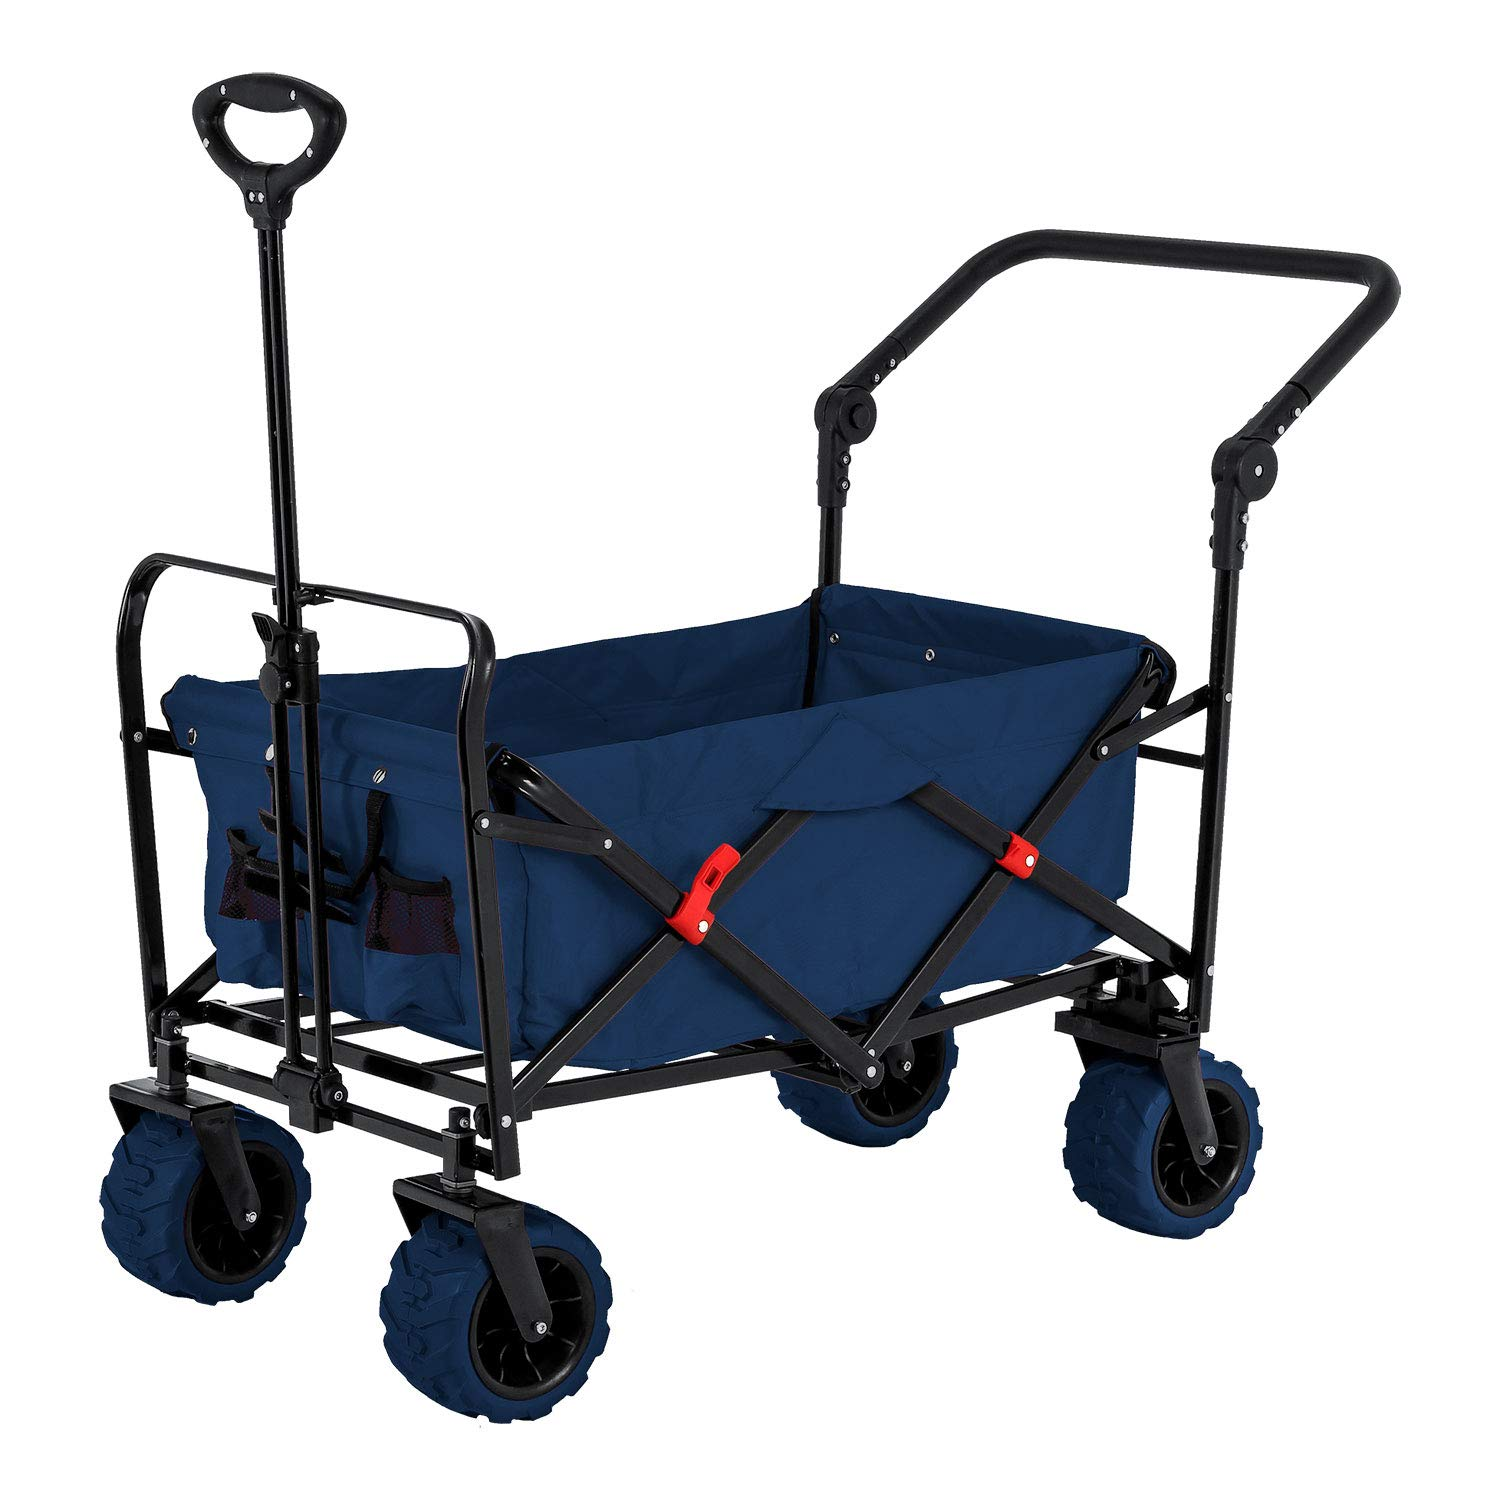 Blue Wide Wheel Wagon All Terrain Folding Collapsible Utility Wagon with Push Bar - Portable Rolling Heavy Duty 265 Lb Capacity Canvas Fabric Cart Buggy - Beach, Garden, Sporting Events, Park, Picnic by TCP Global